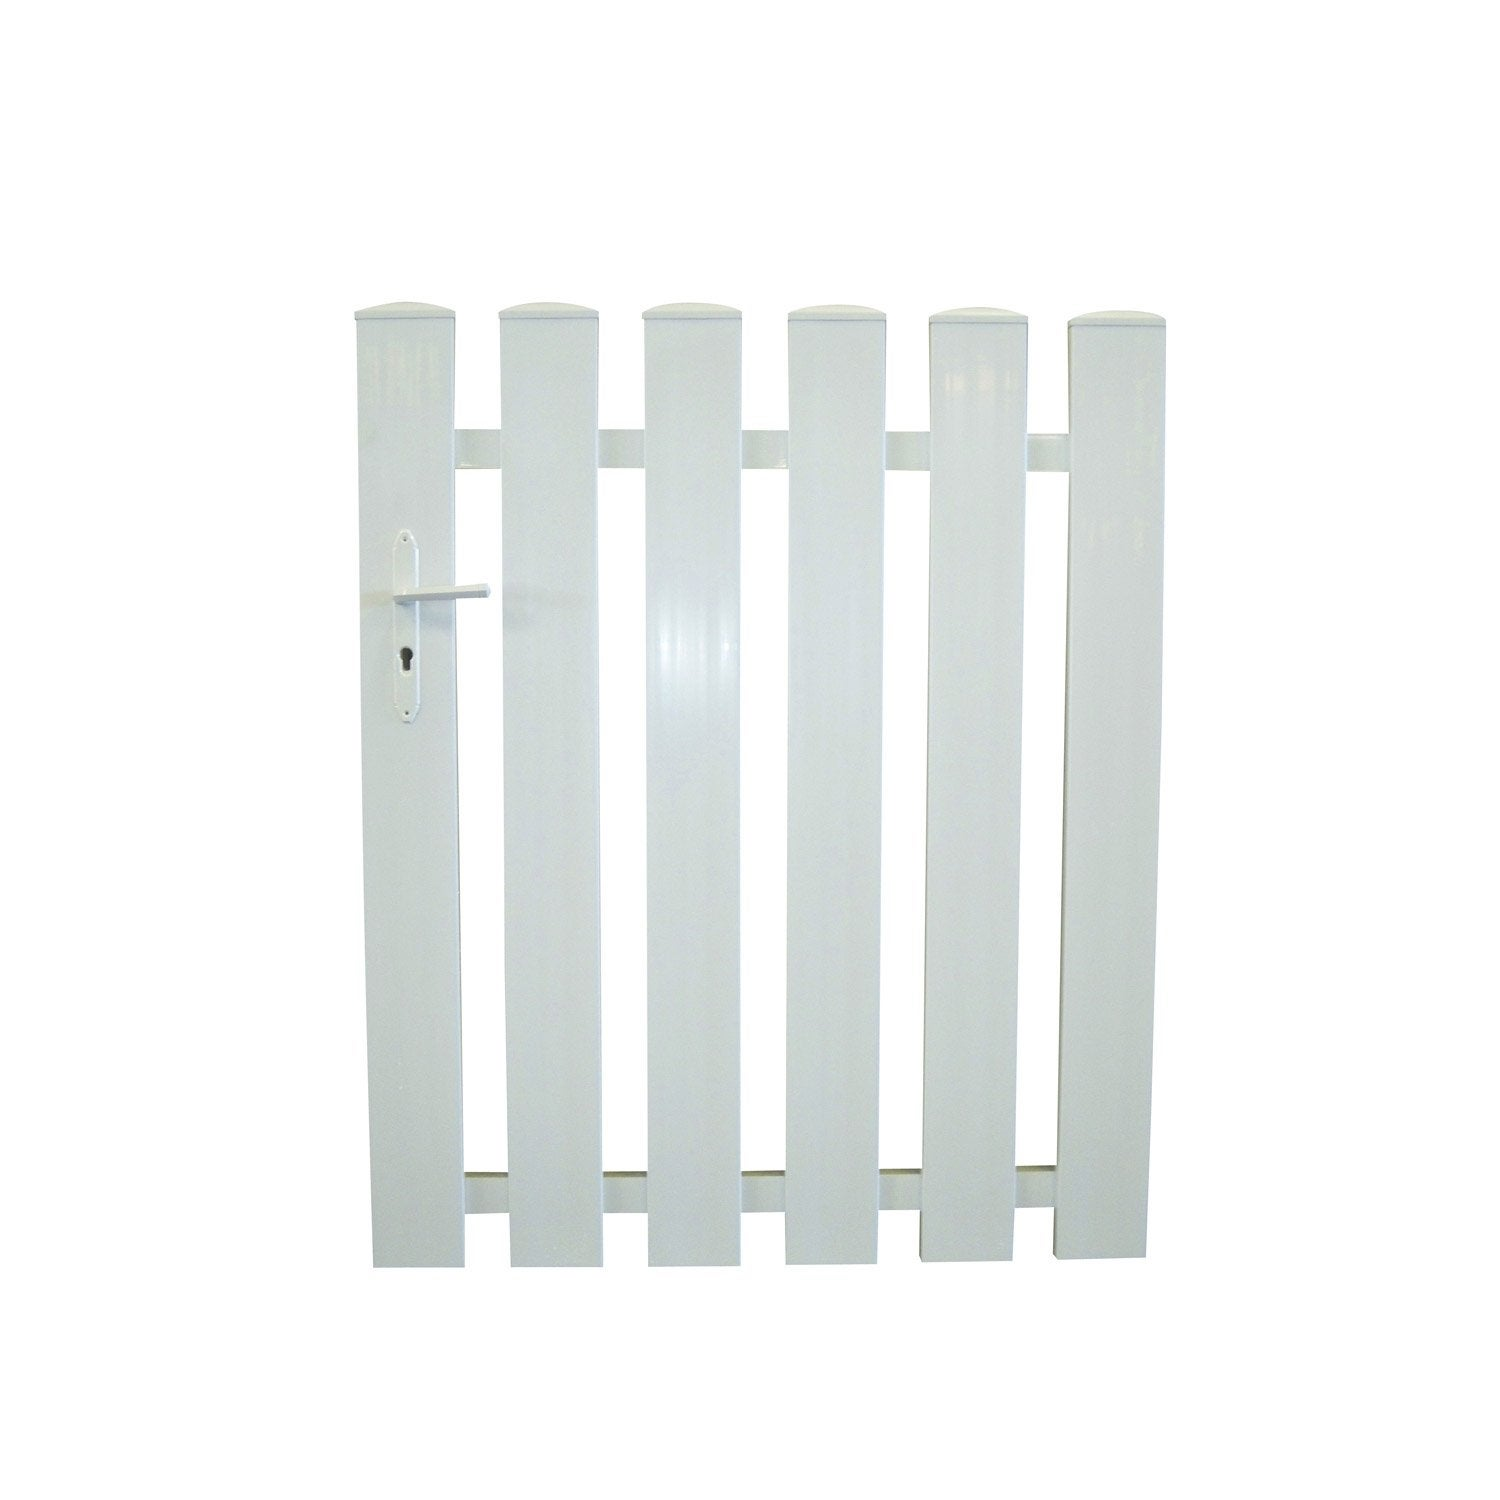 Portillon pvc blanc pas cher for Prix portillon pvc